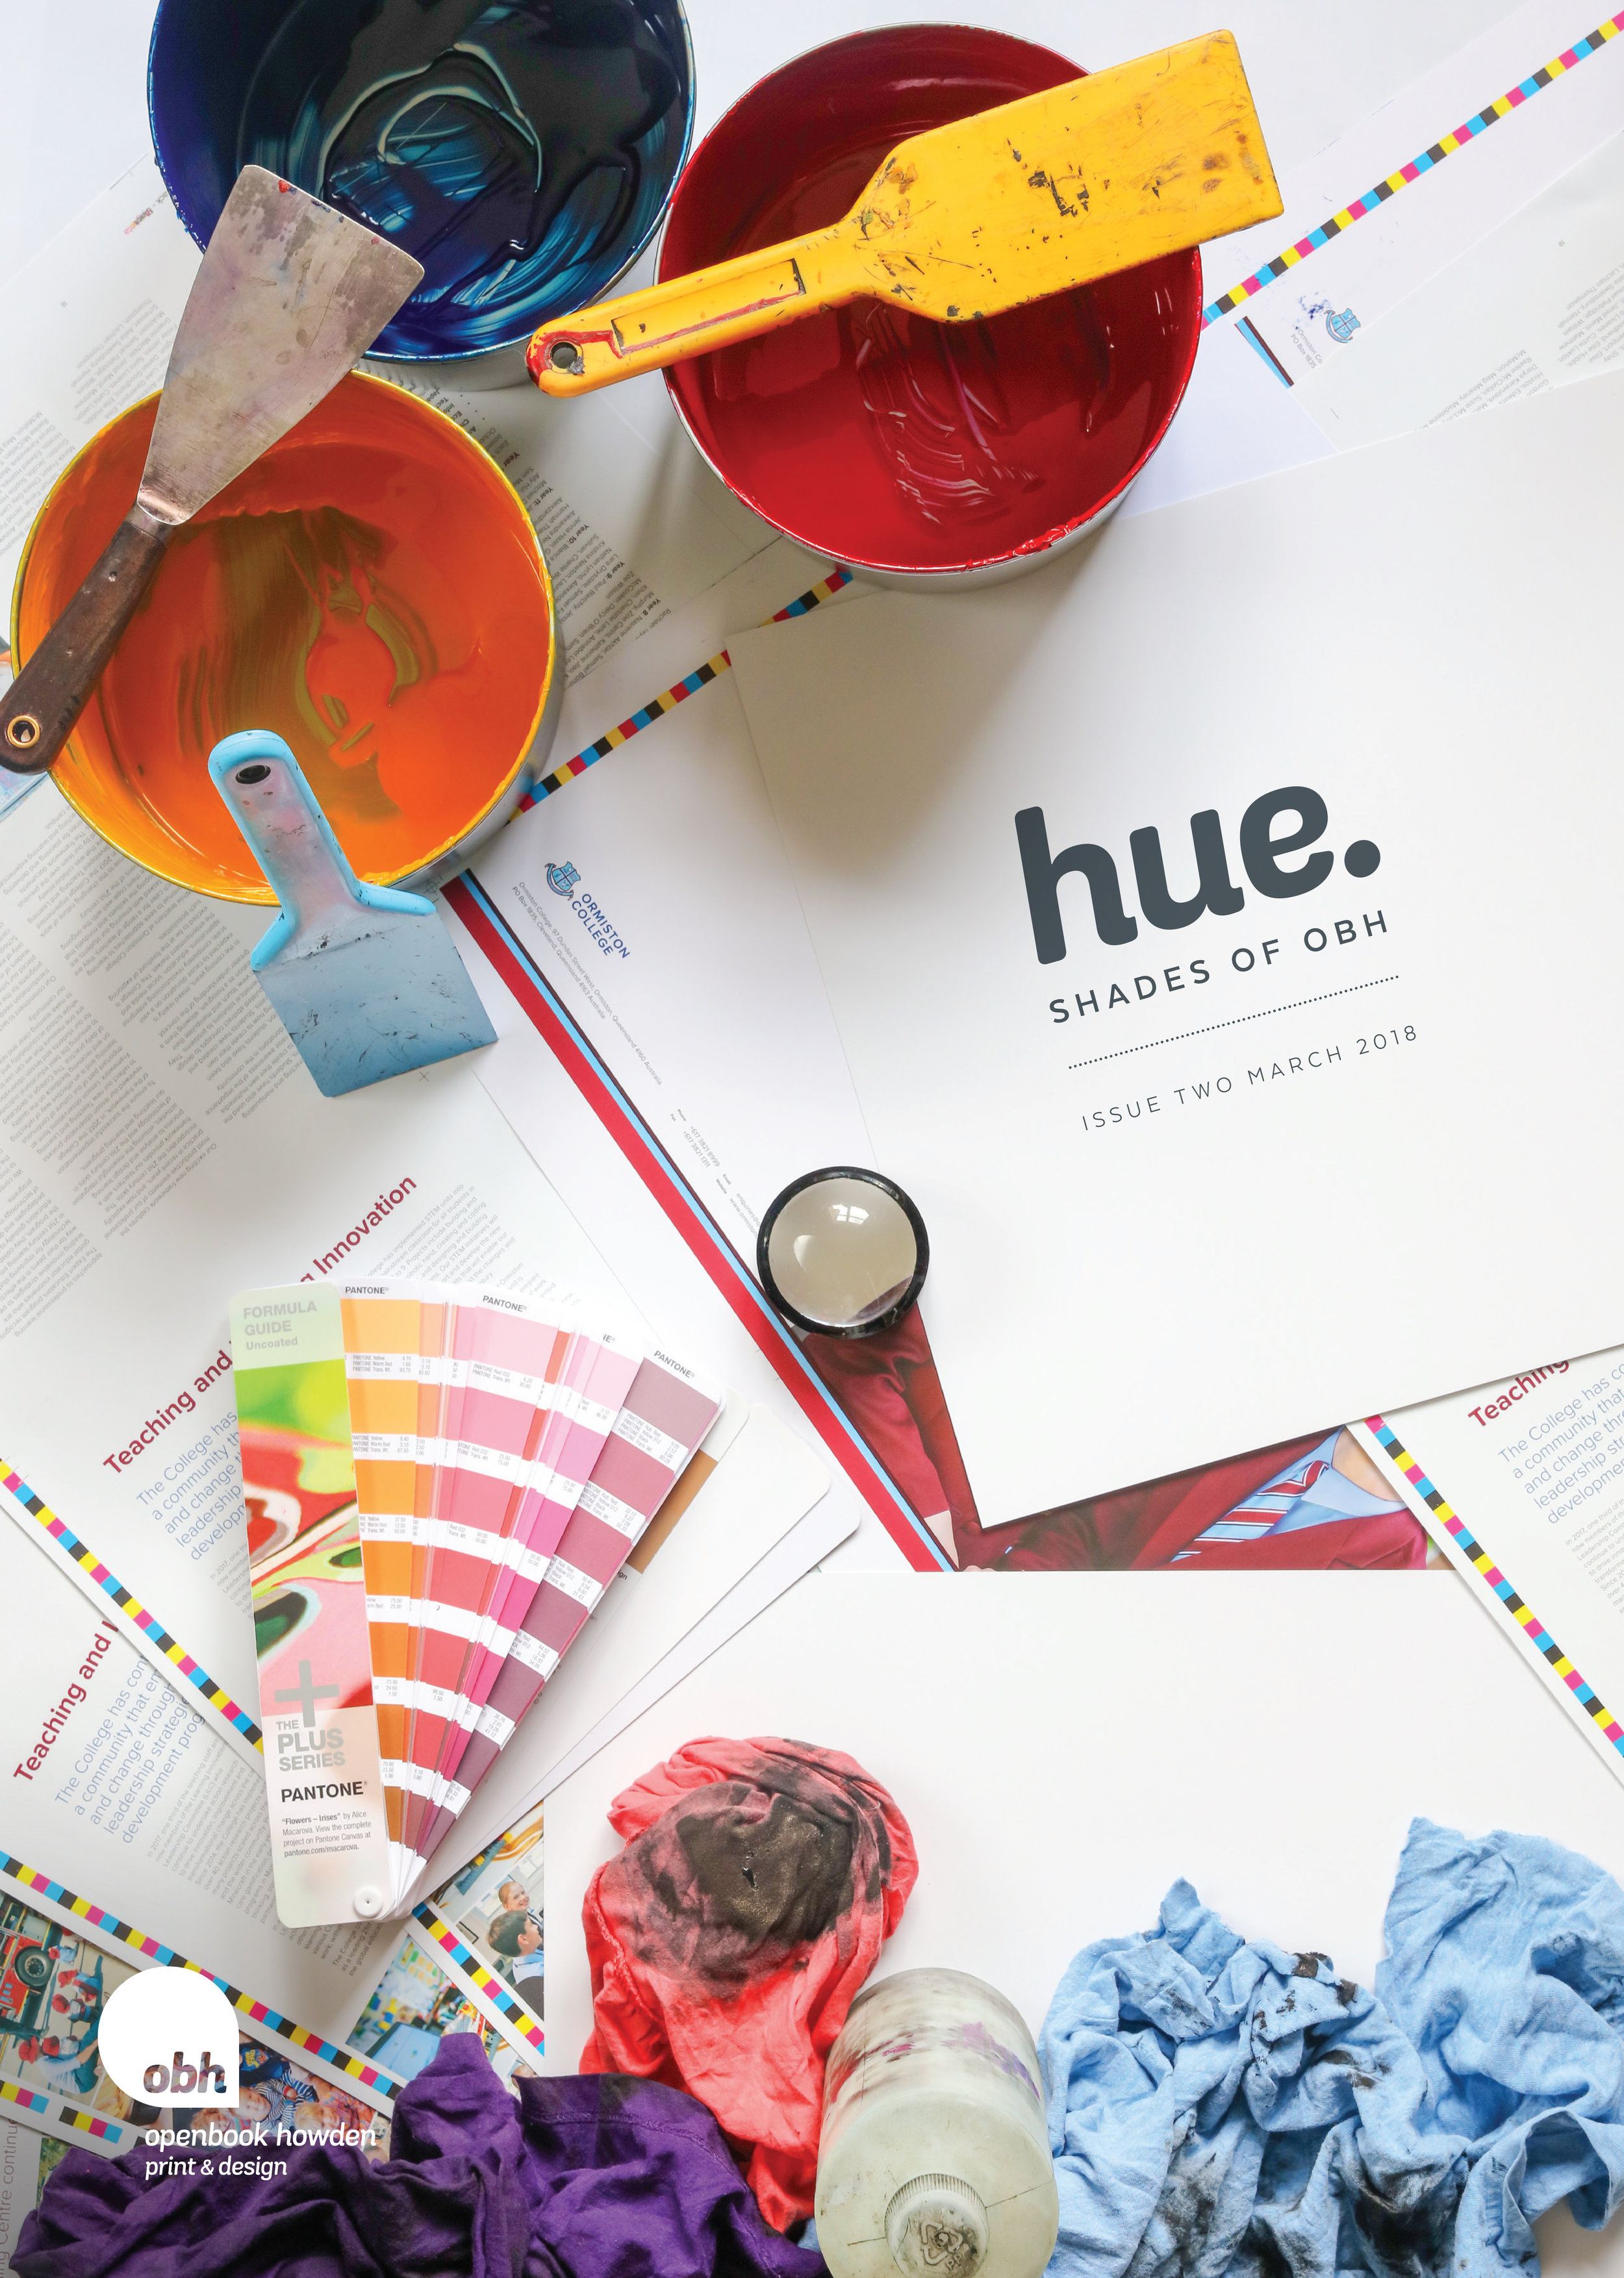 Openbook Howden's Hue magazine cover.